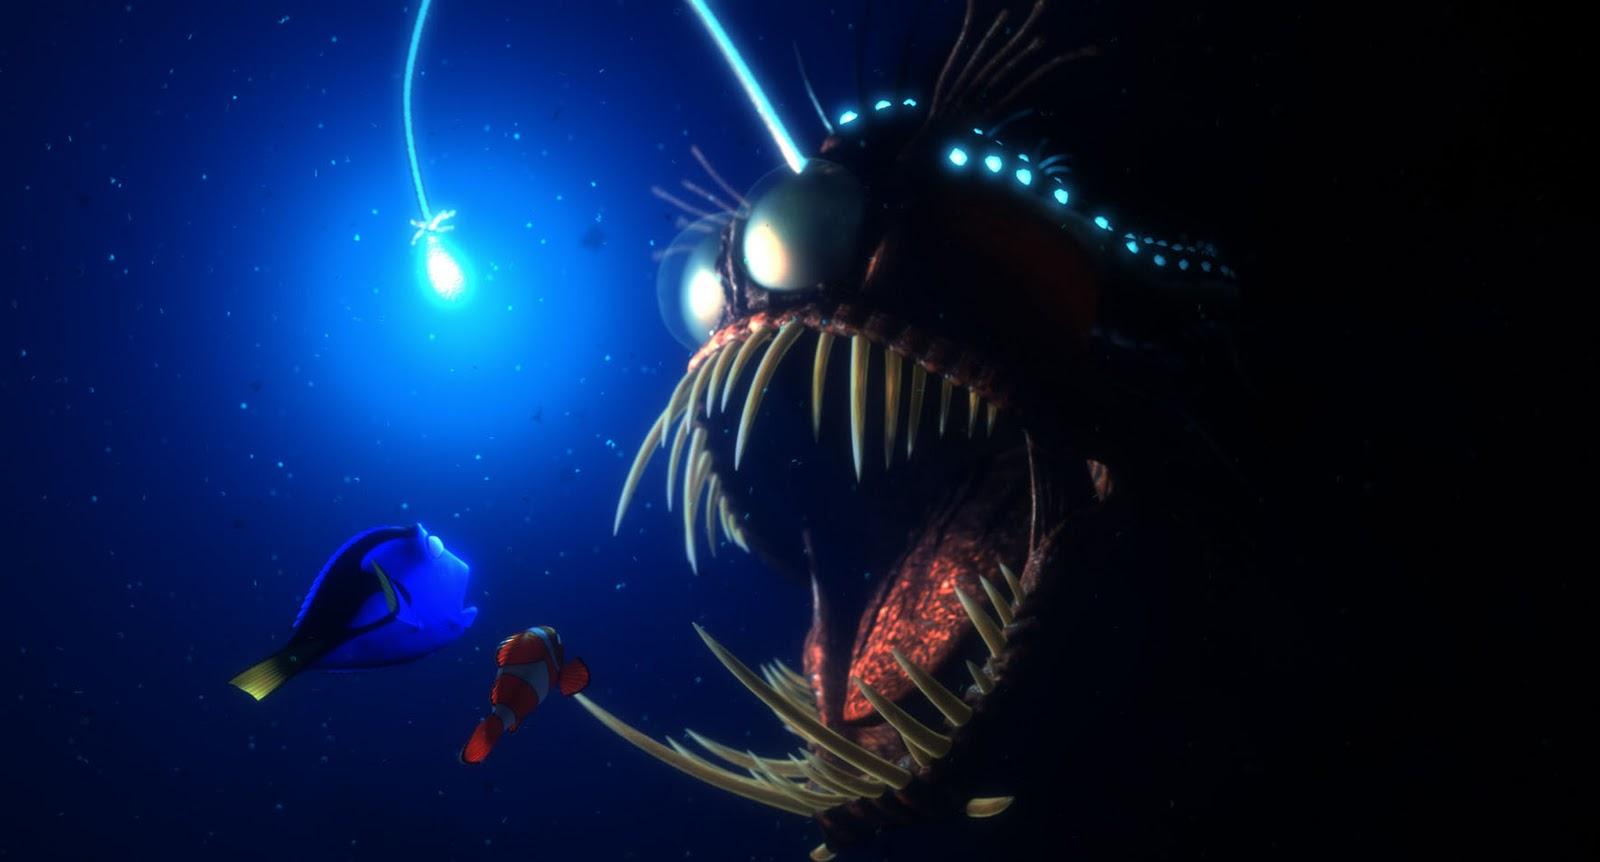 finding nemo 3d movie poster hd wallpapers cartoon